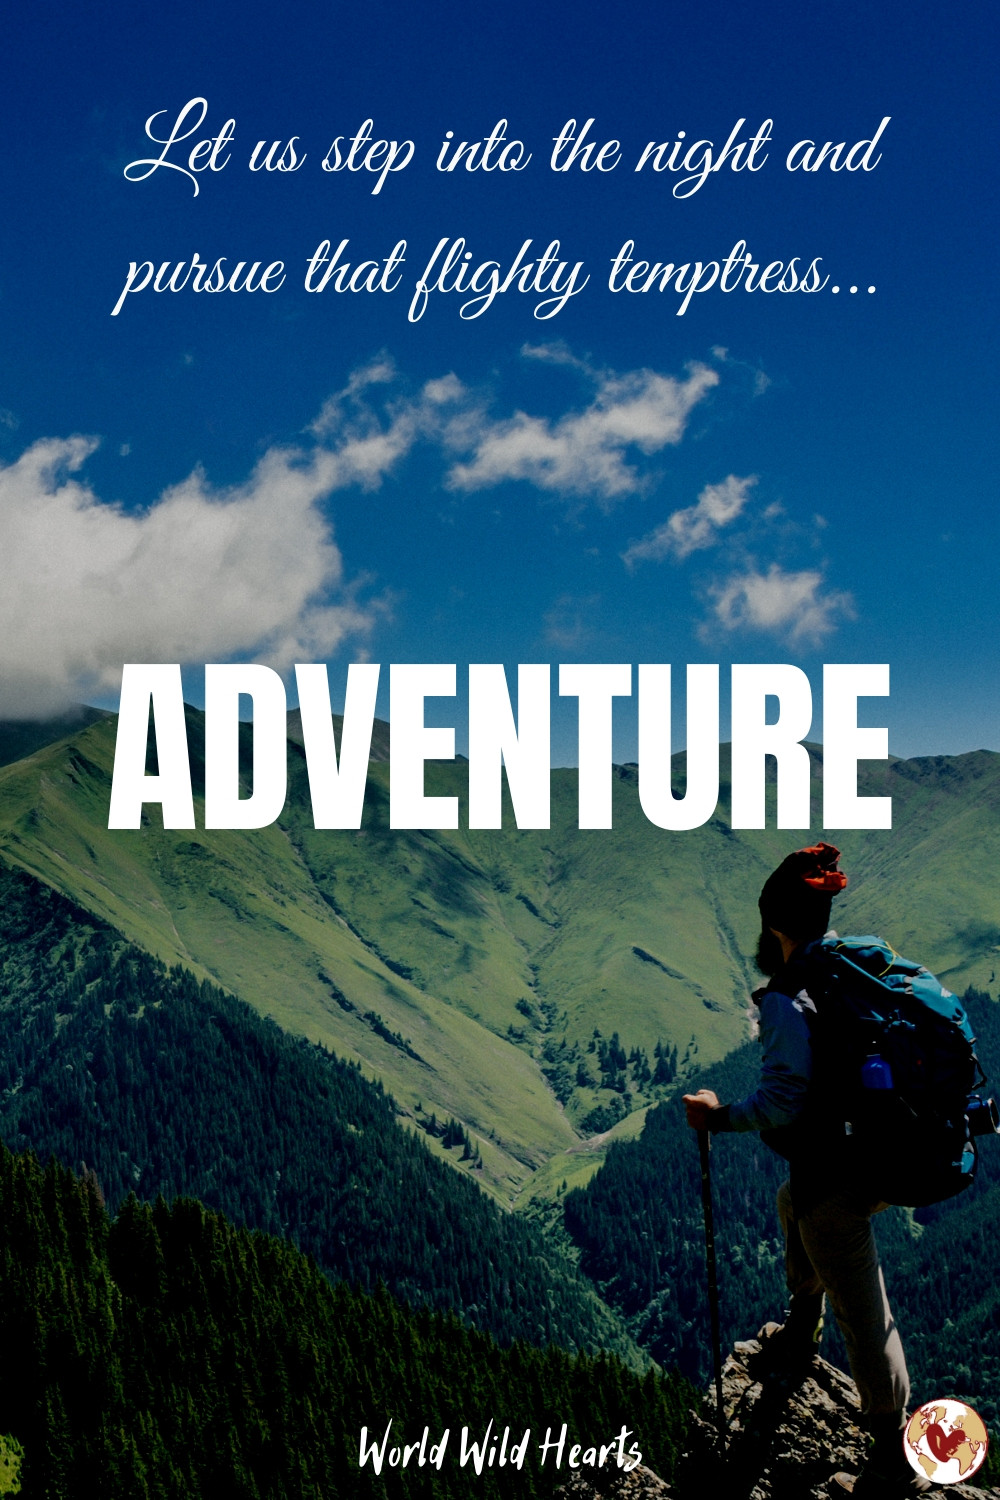 Famous female travel quote